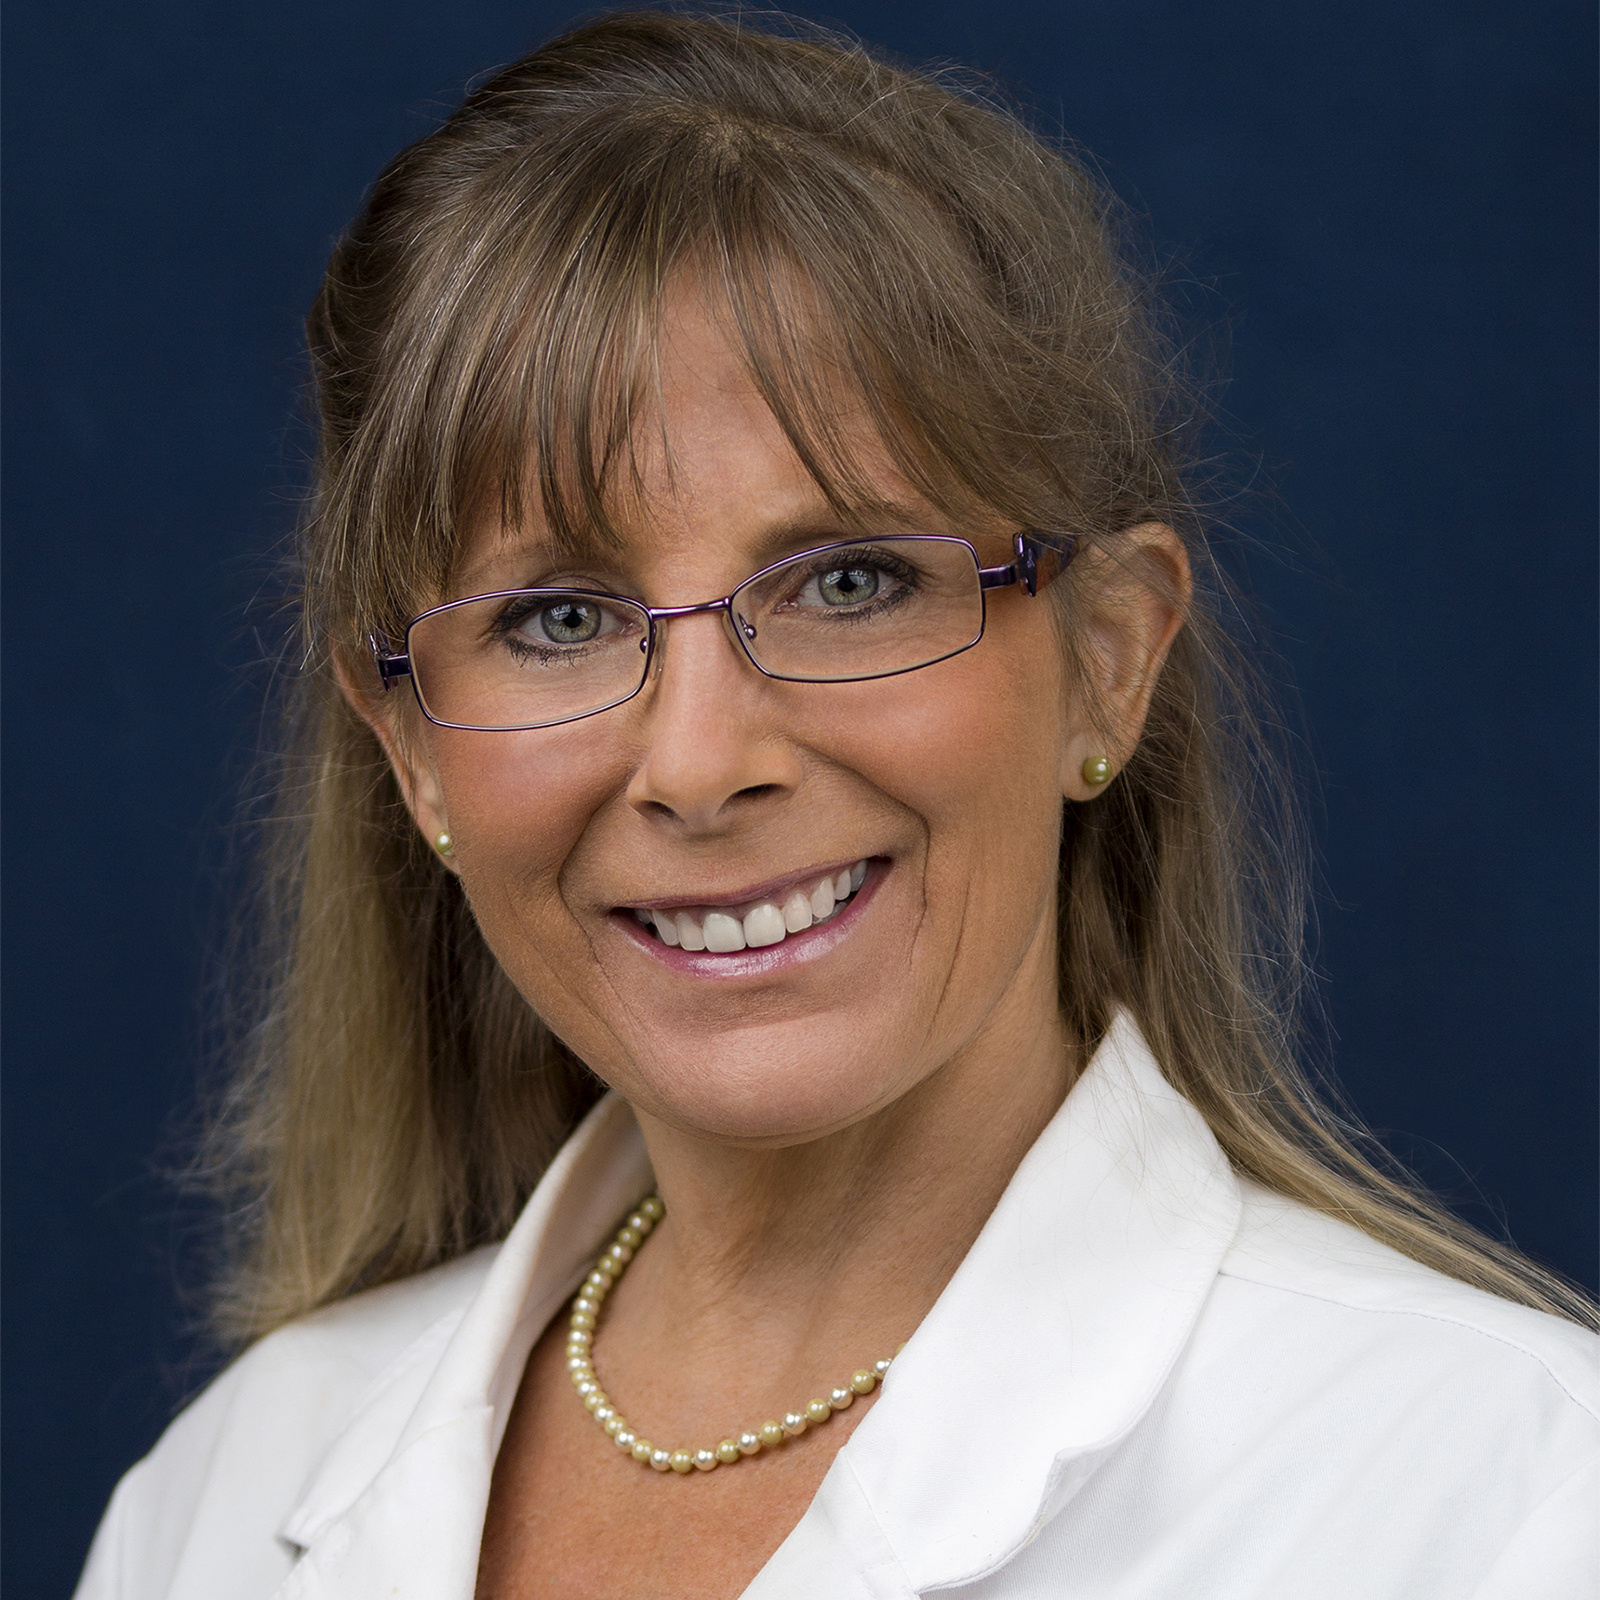 patricia dunn, nurse practitioner, Pain Relief, Florida Pain institute, Pain Managment, Chronic Pain Relief, Pain Management Clinic